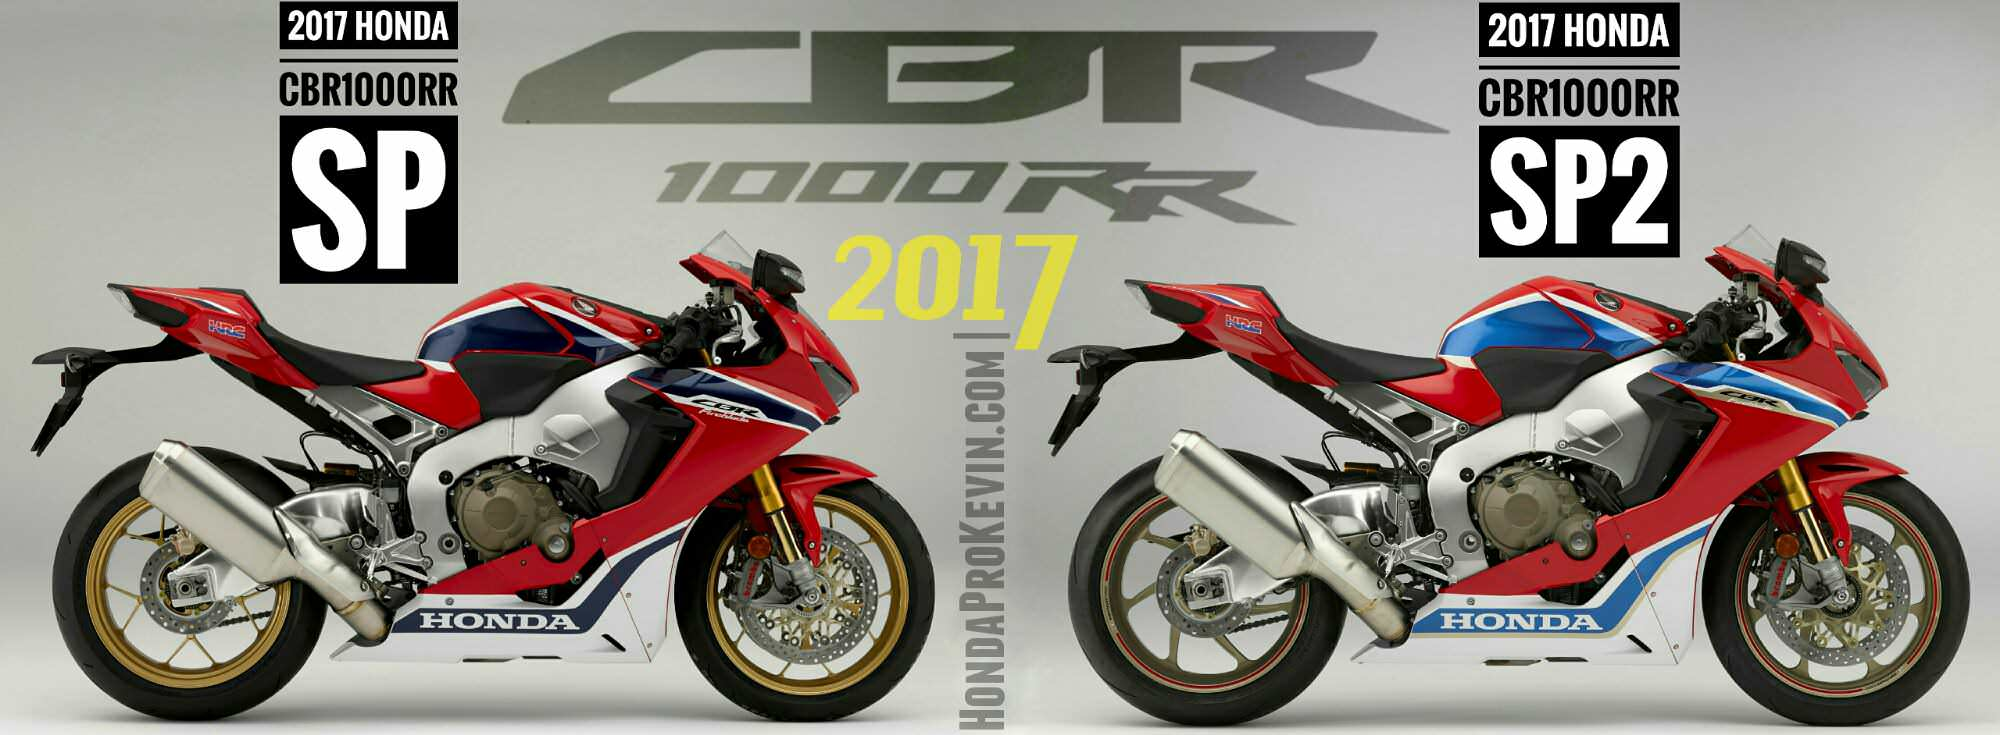 2017 CBR1000RR SP2 Versus CBR1000RR SP Comparison Review / Differences - CBR 1000 RR Sport Bike / Motorcycle Review & Specs